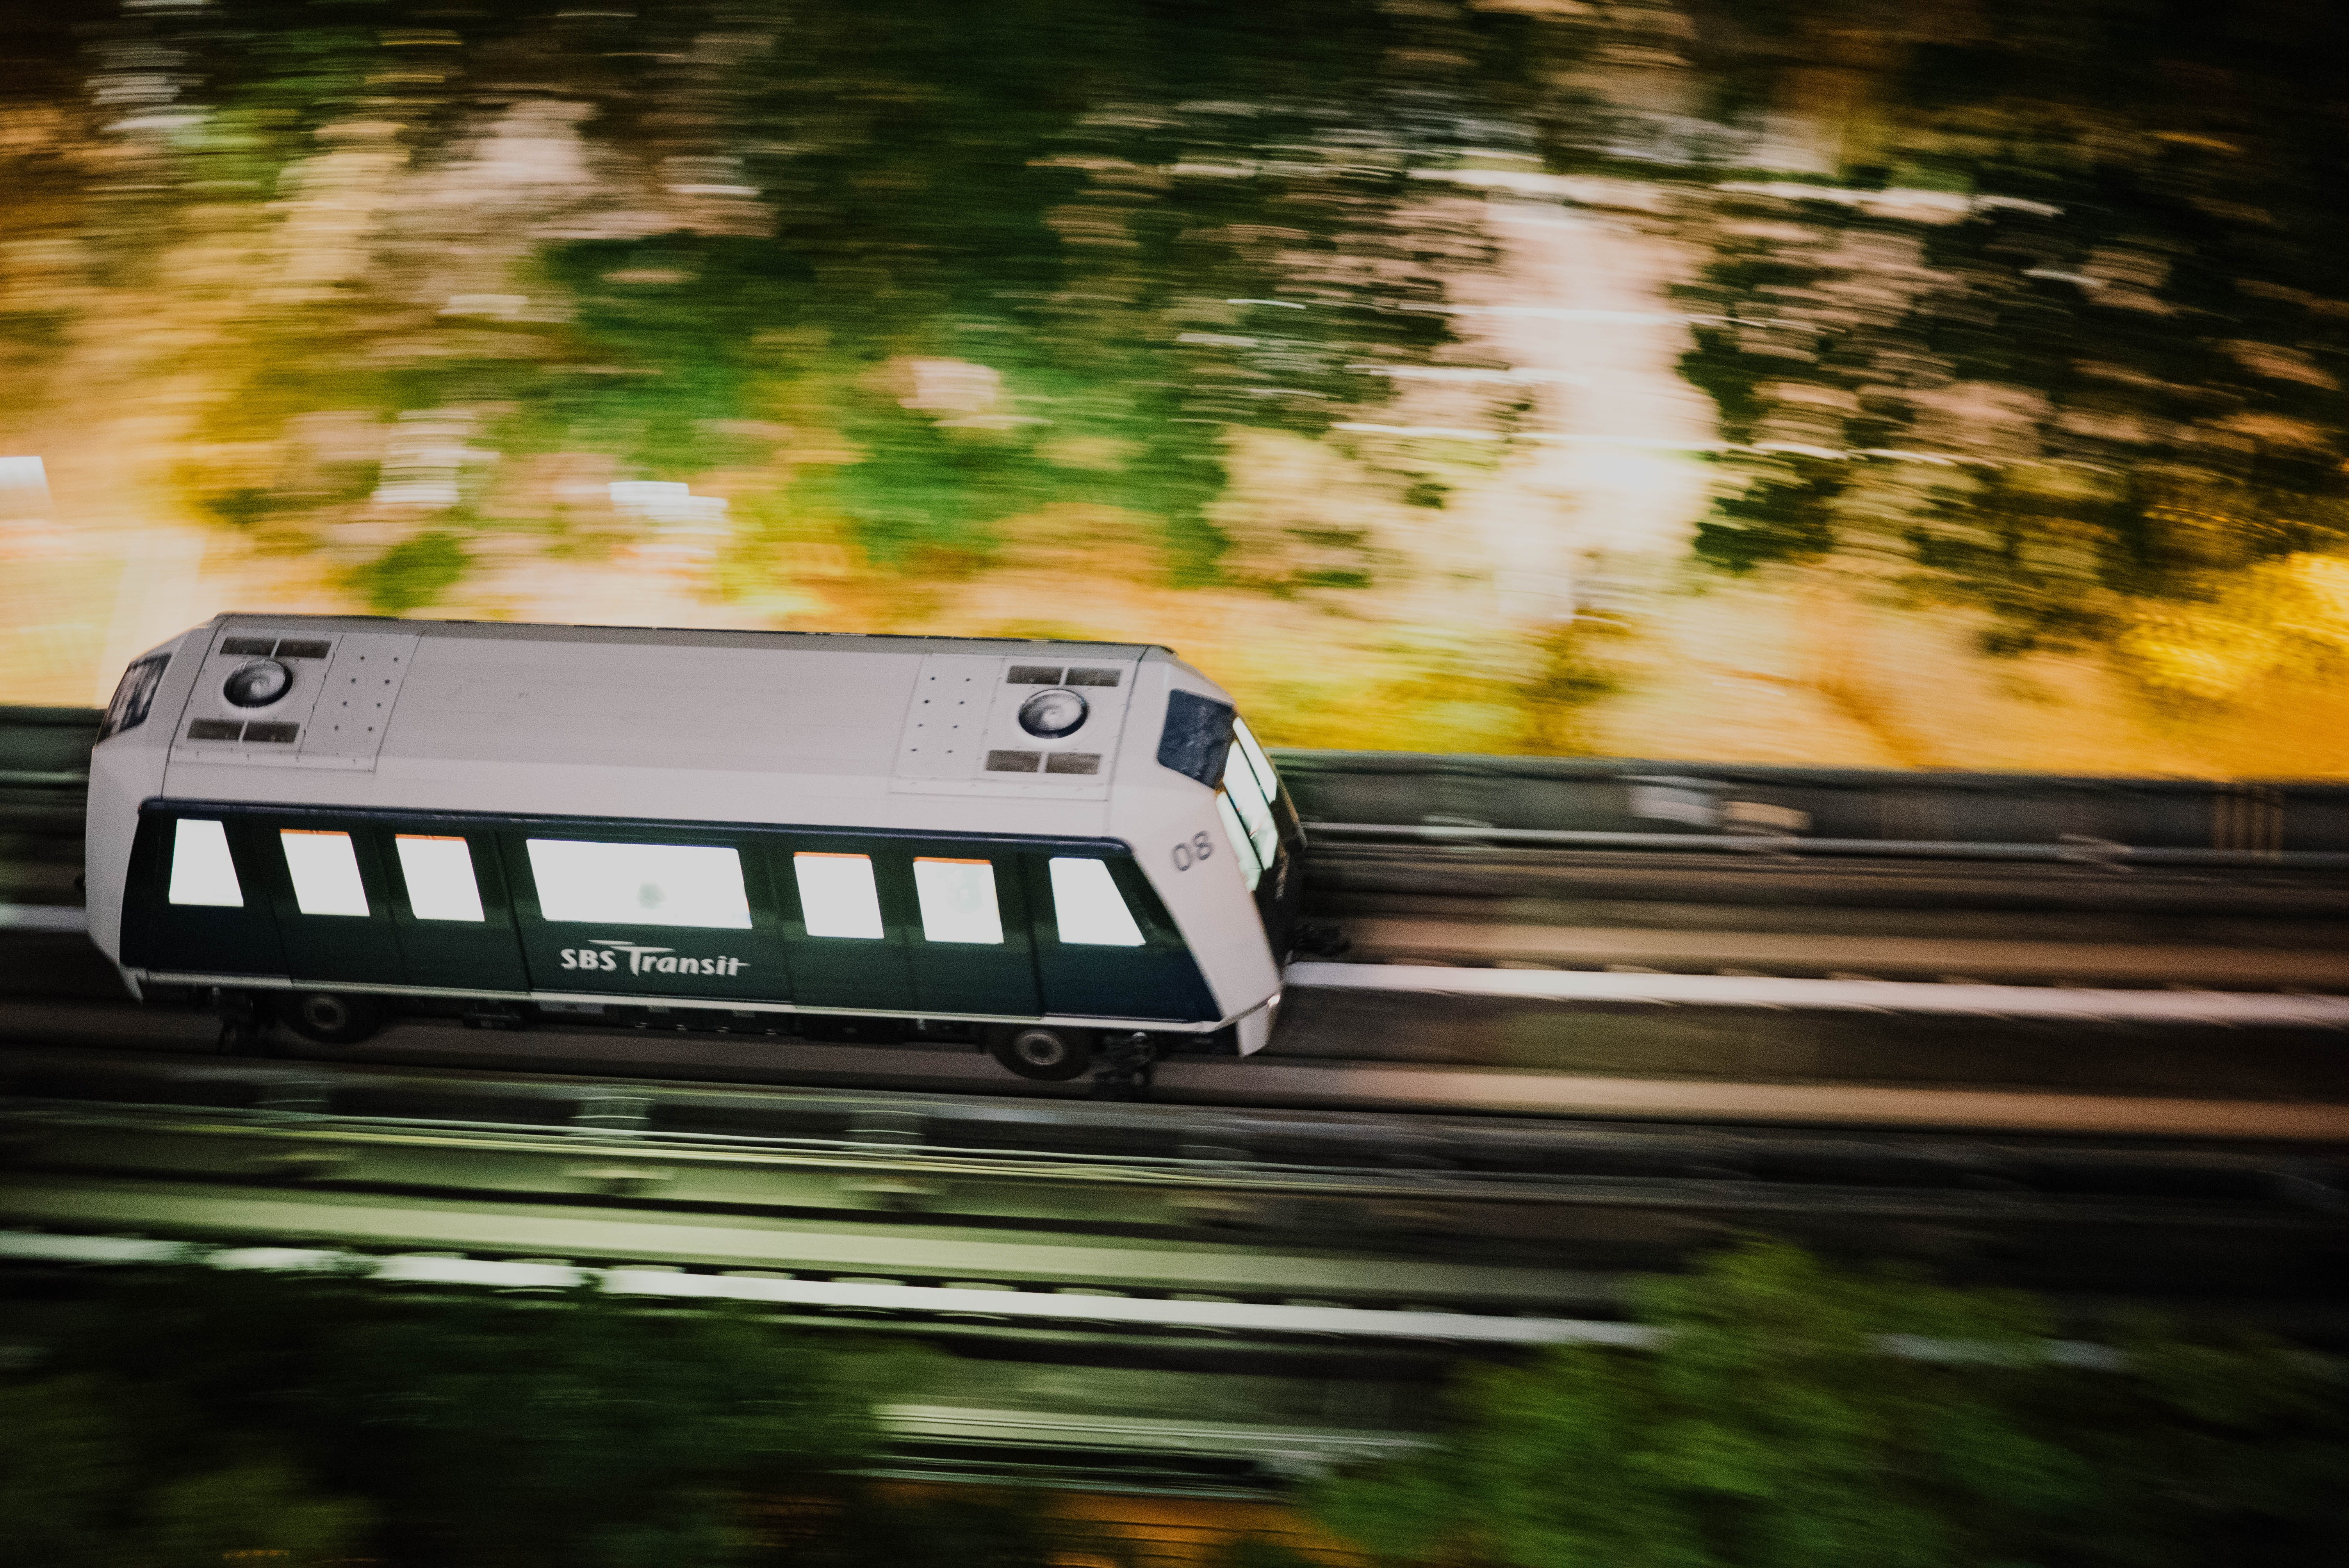 panning photography of train on railway